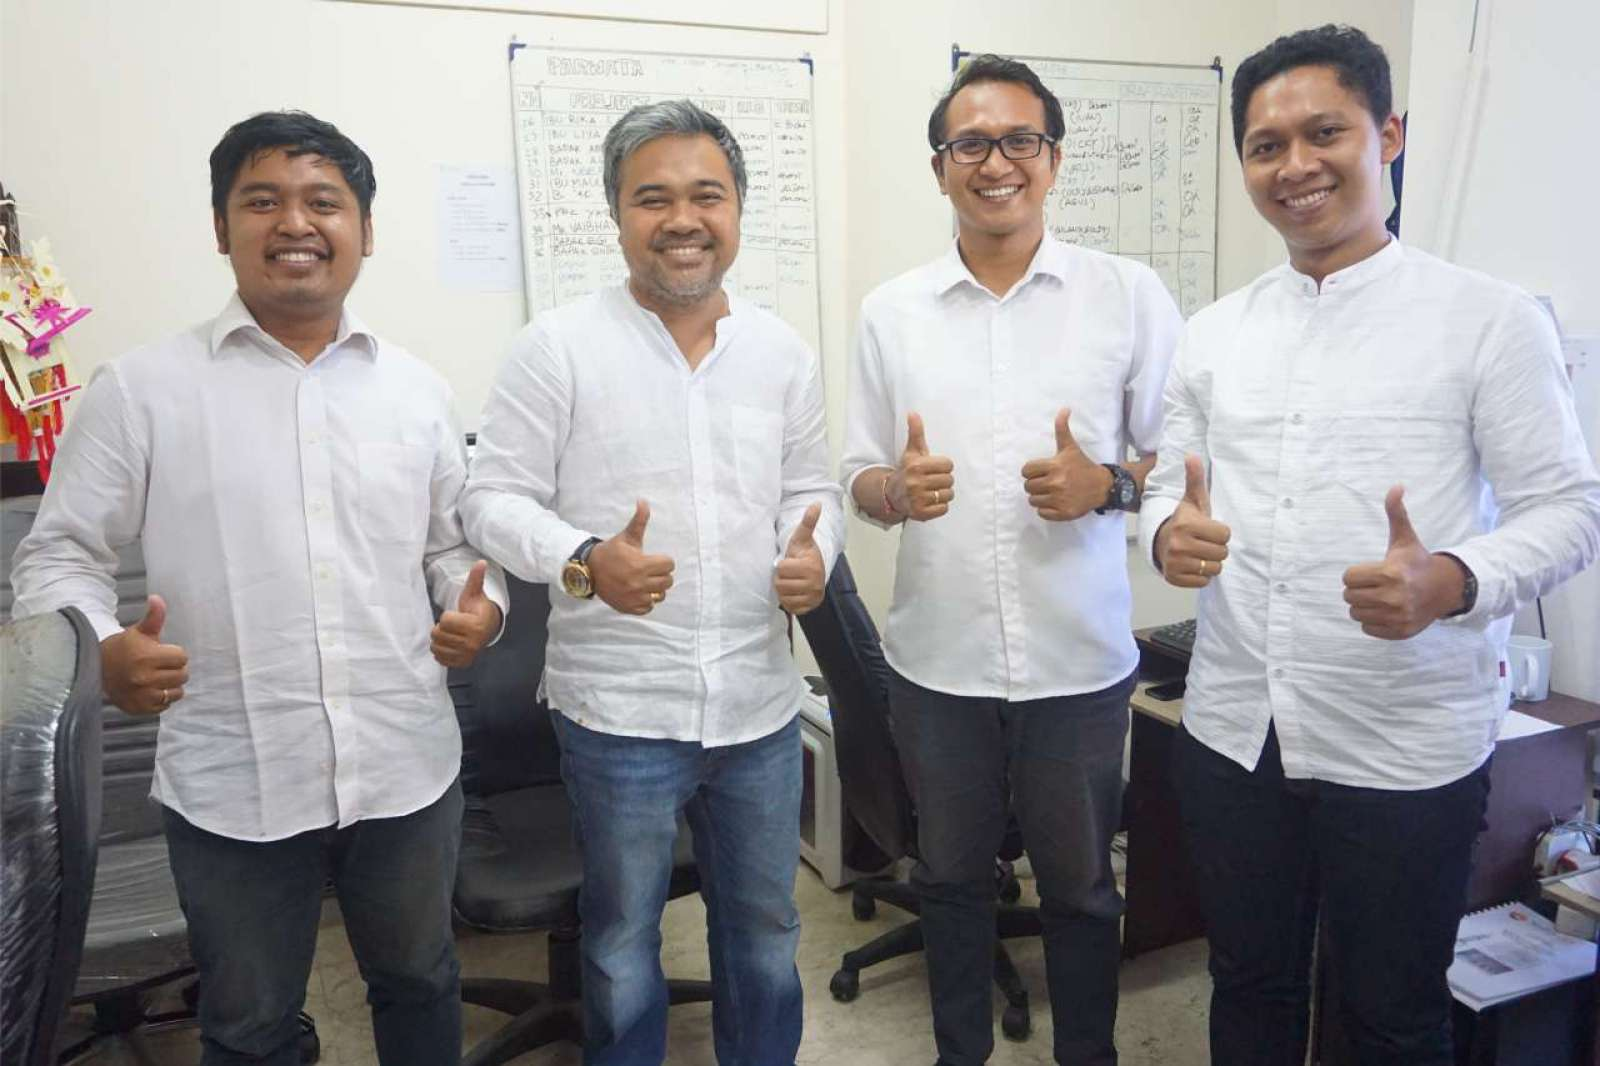 Photo with the Emporio Bali Architect Team Before Working From Home Because of the COVID-19 Virus Pa 6